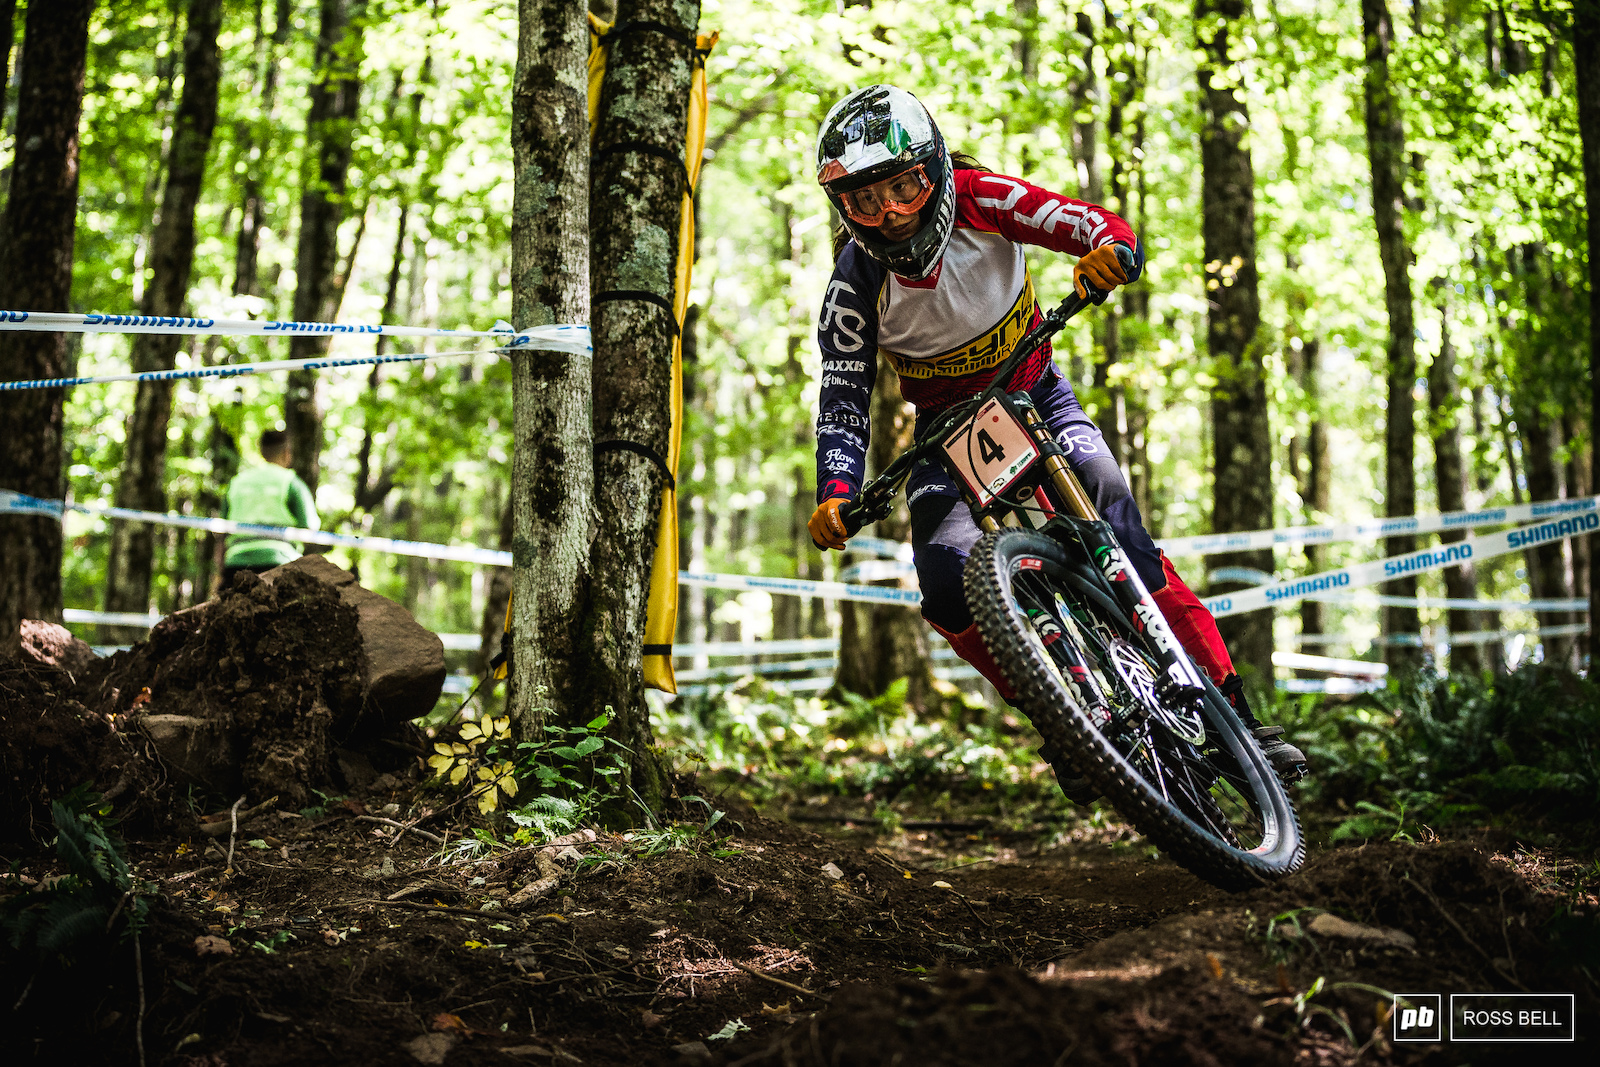 Veronika Widmann with another strong showing in 4th. Another podium would be a good conclusion to her season.